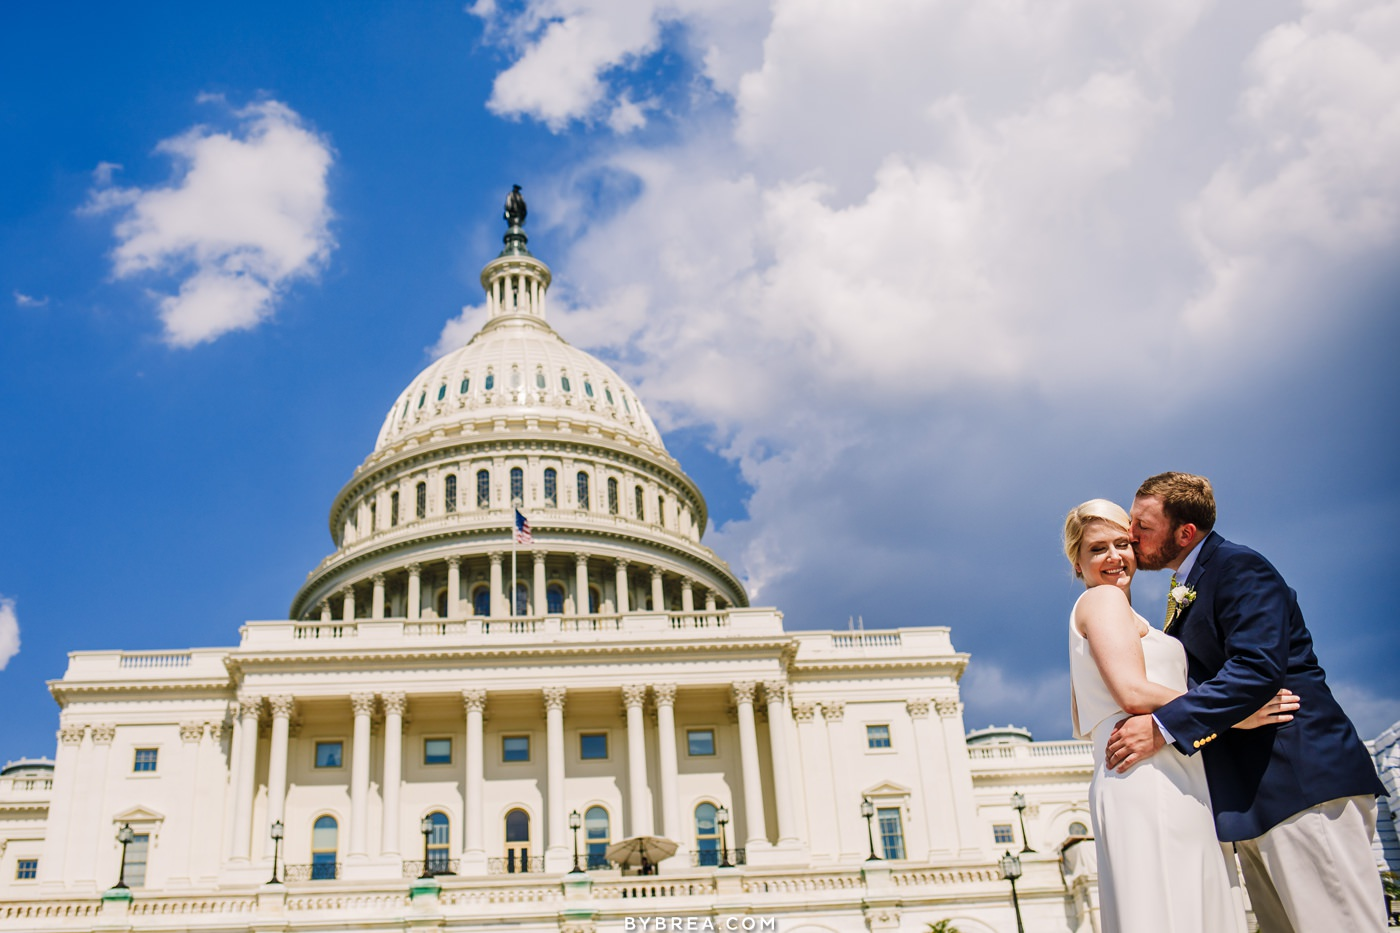 Wedding portrait photo of bride and groom outside the Capitol Washington D.C.